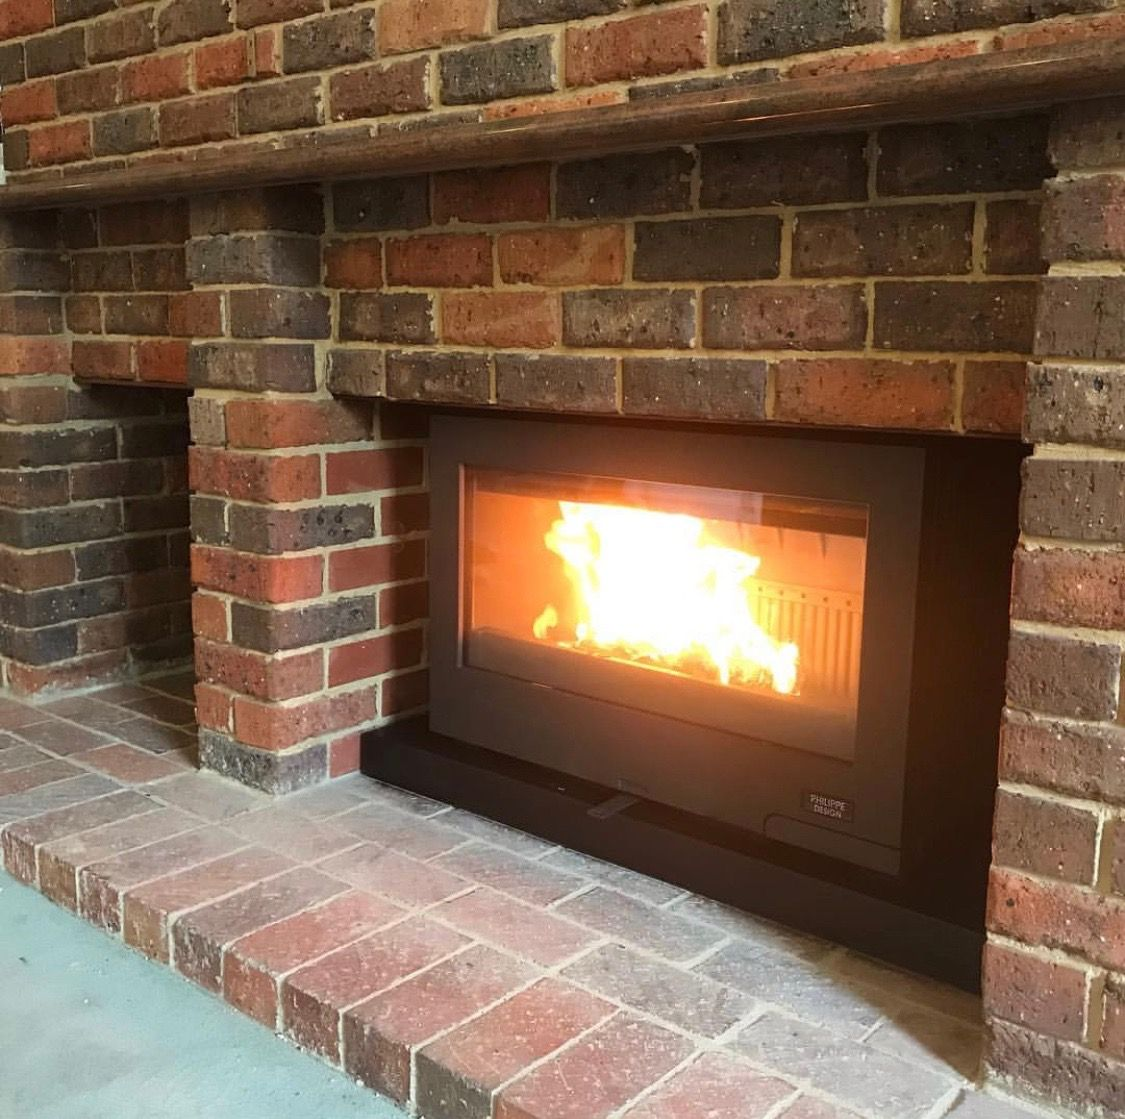 The Cheminees Philippe Horama Installed Into This Perfect Brick Fireplace Installation By Fireworx Retractable Glass Doors Fireplace Brick Fireplace